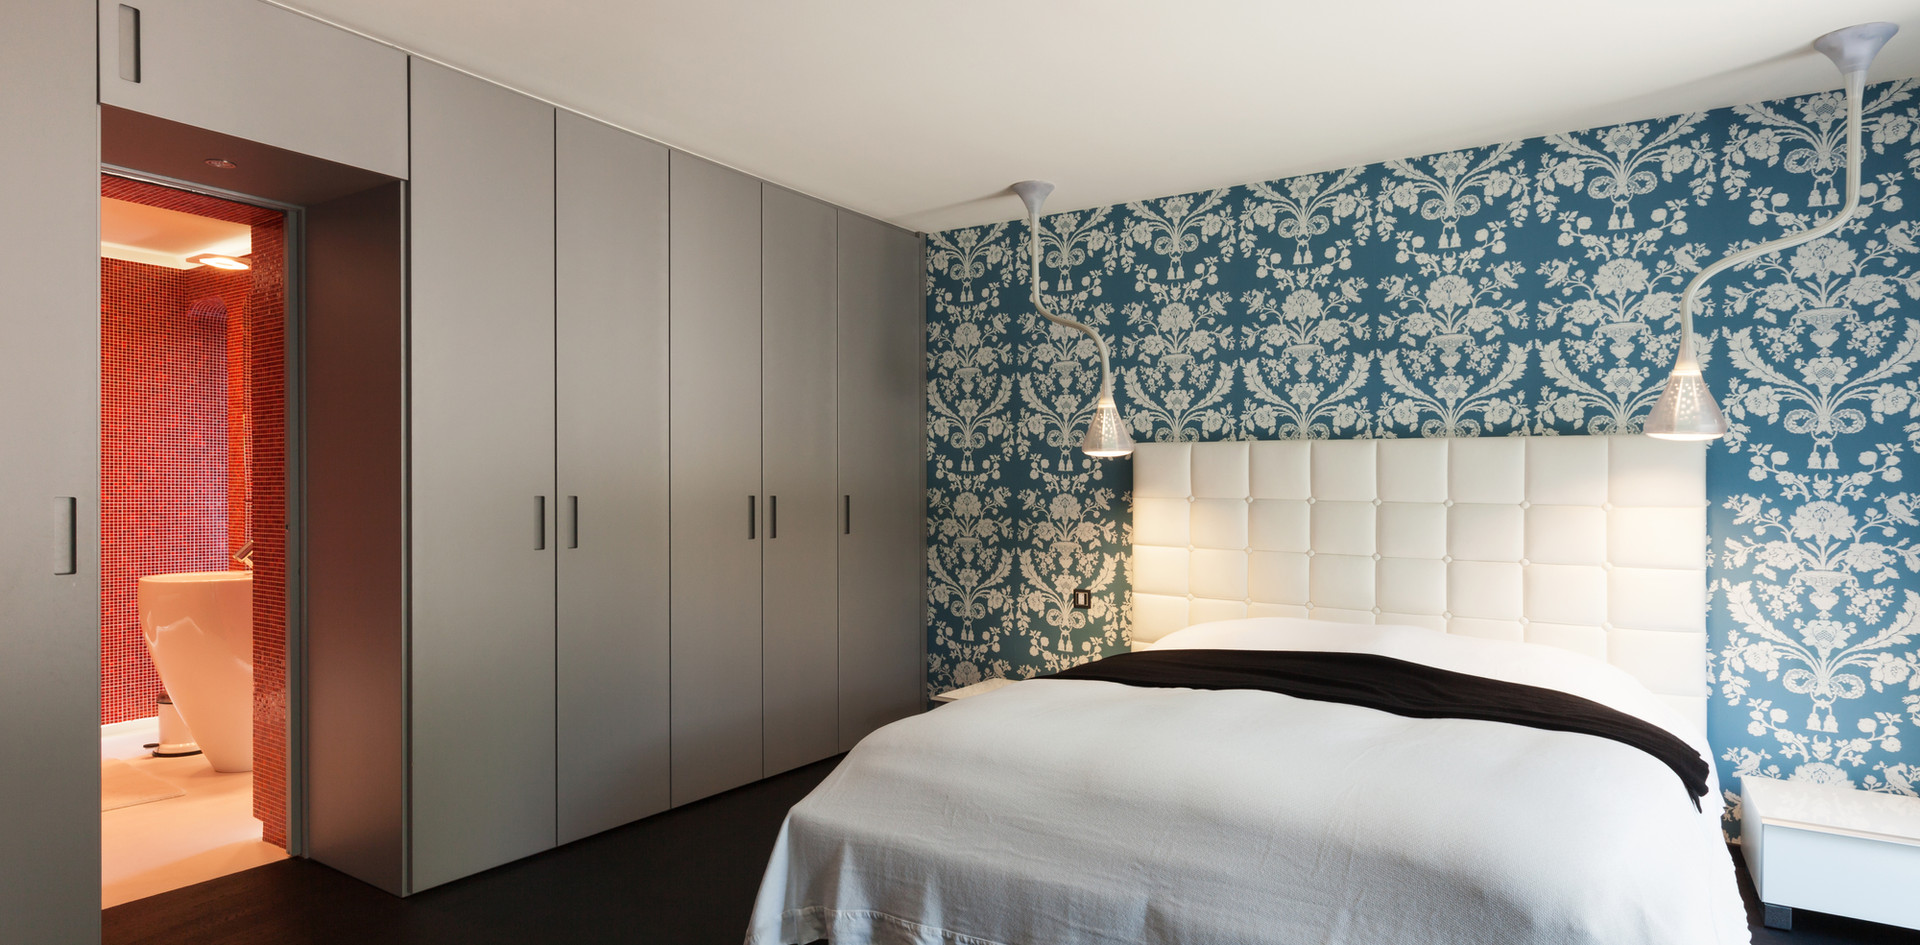 Fitted Lacquer Bedroom Furniture.jpeg